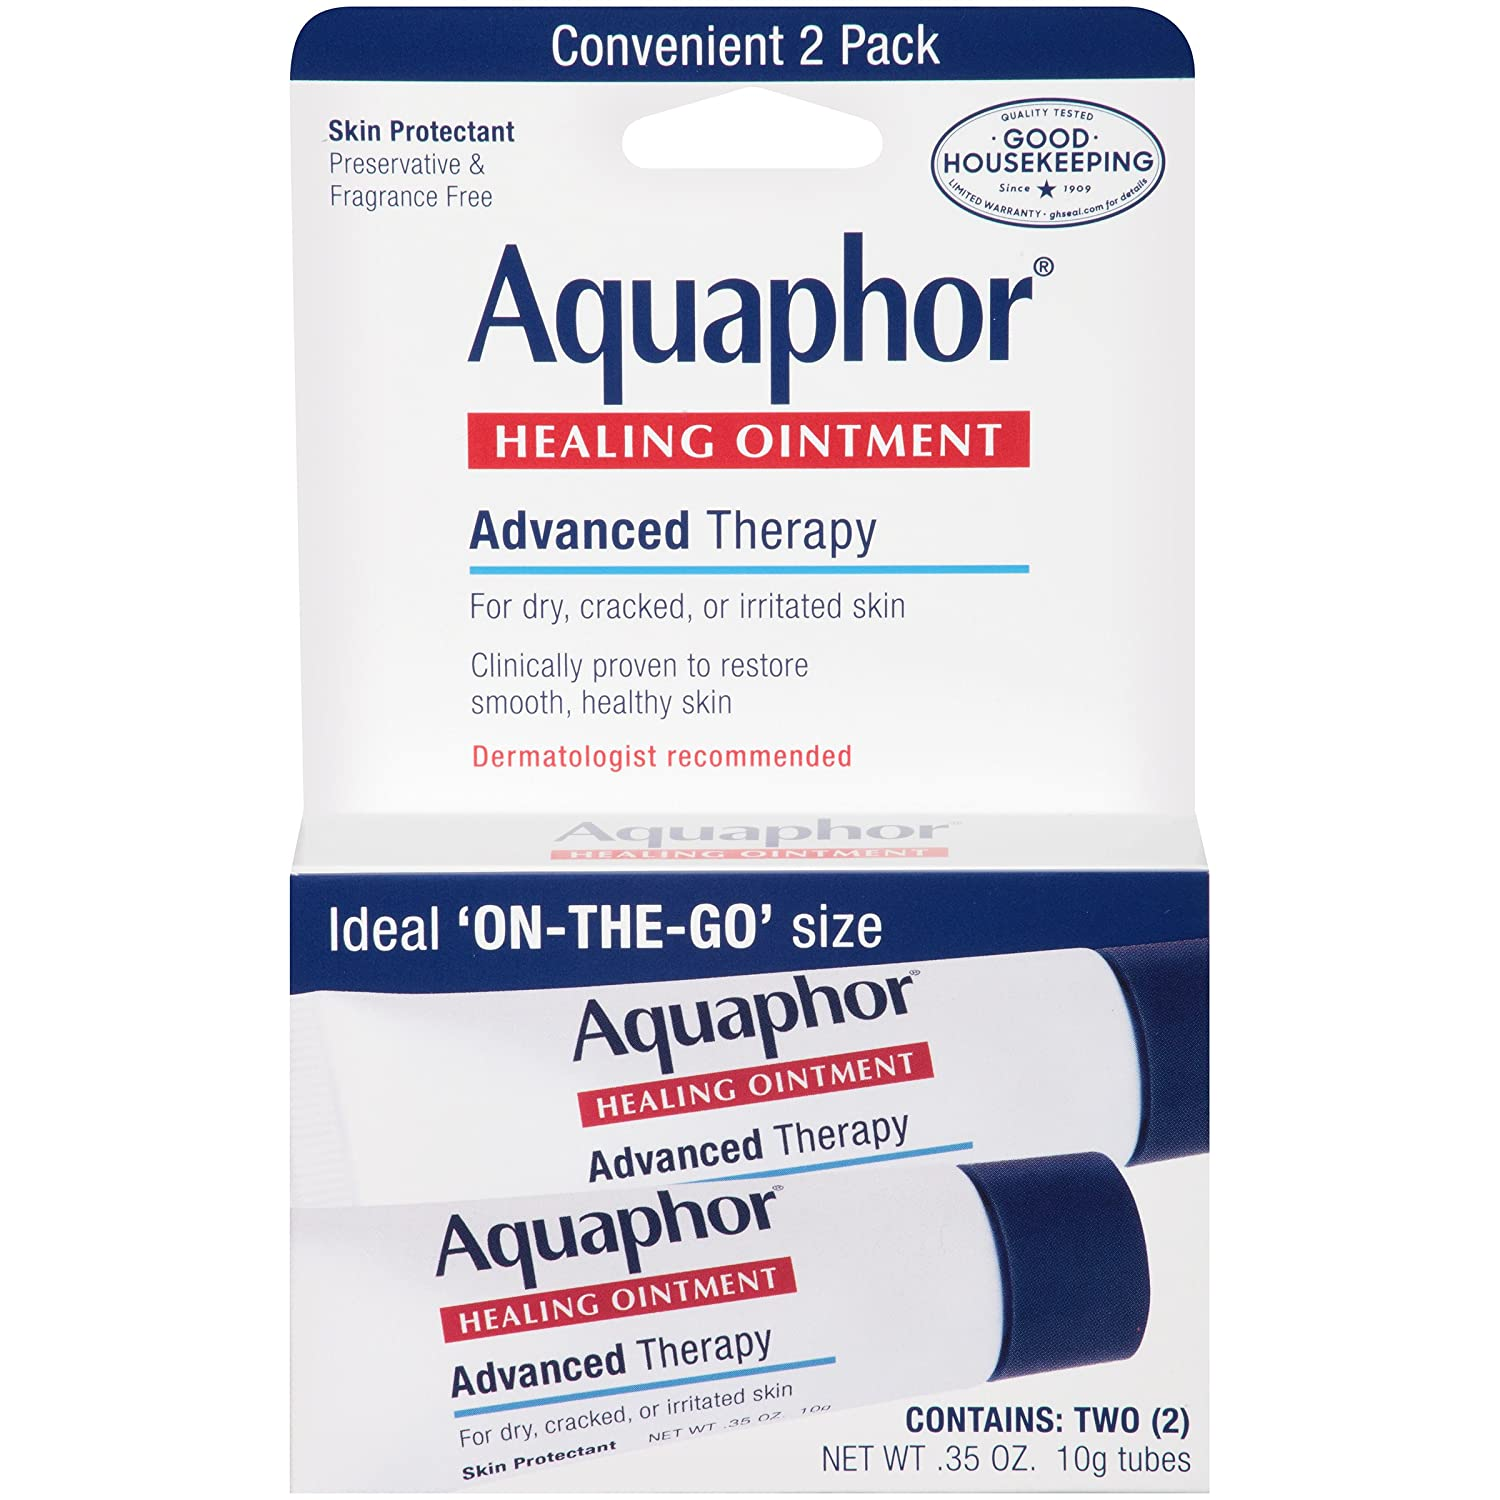 Aquaphor Healing Skin Ointment, Advanced Therapy, 2 Pack, 0.35 oz ea (Pack of 24)